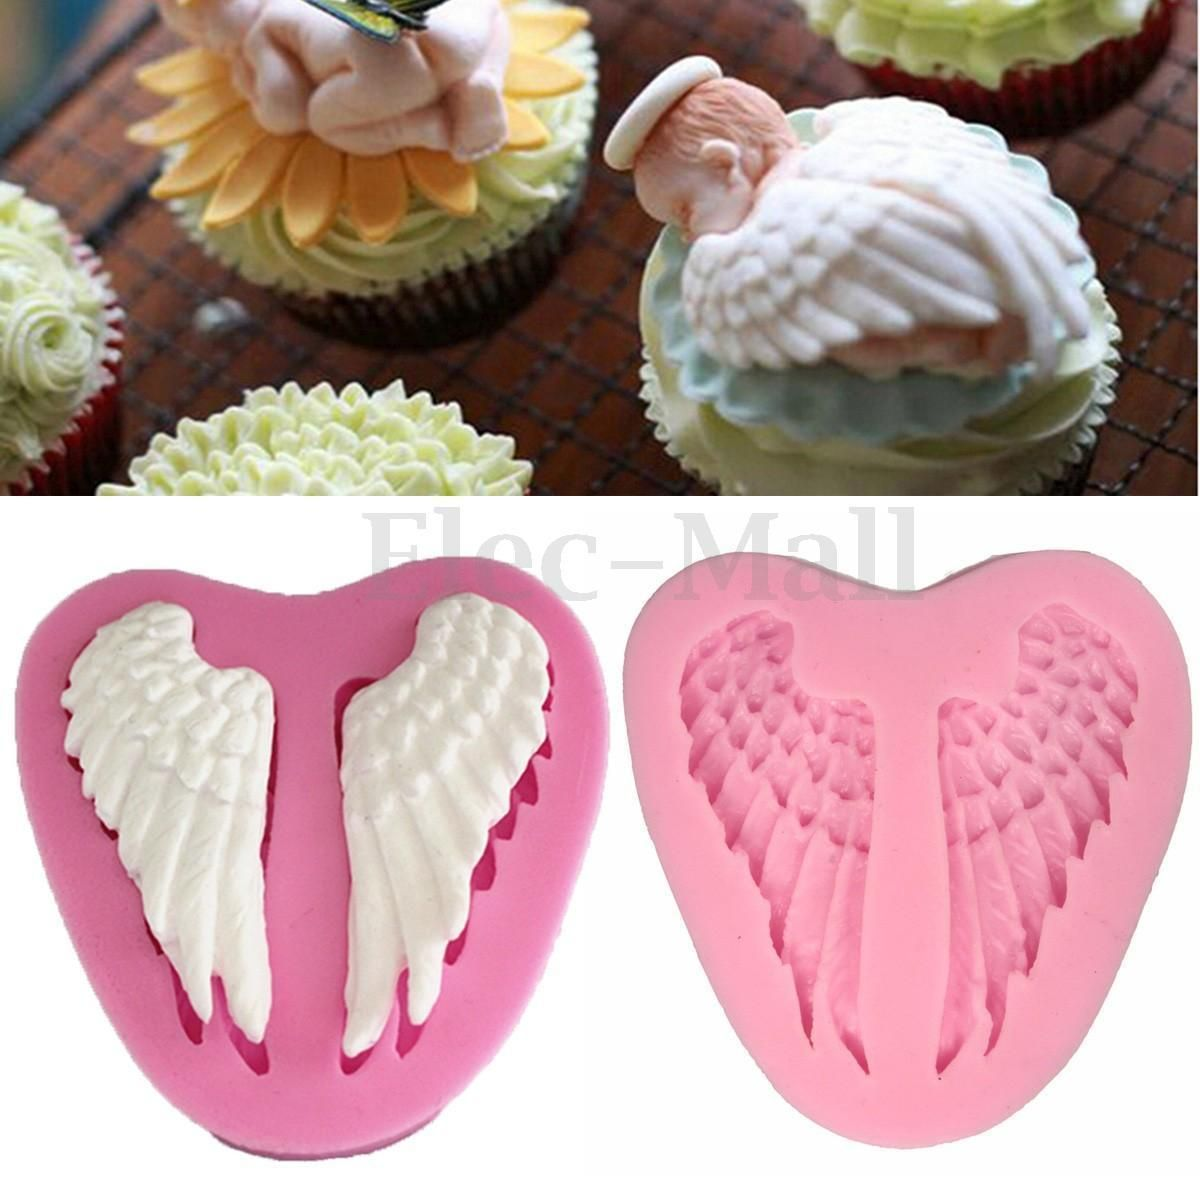 silicone mold resin clay heart wings mold decor for chocolate cake baking tools